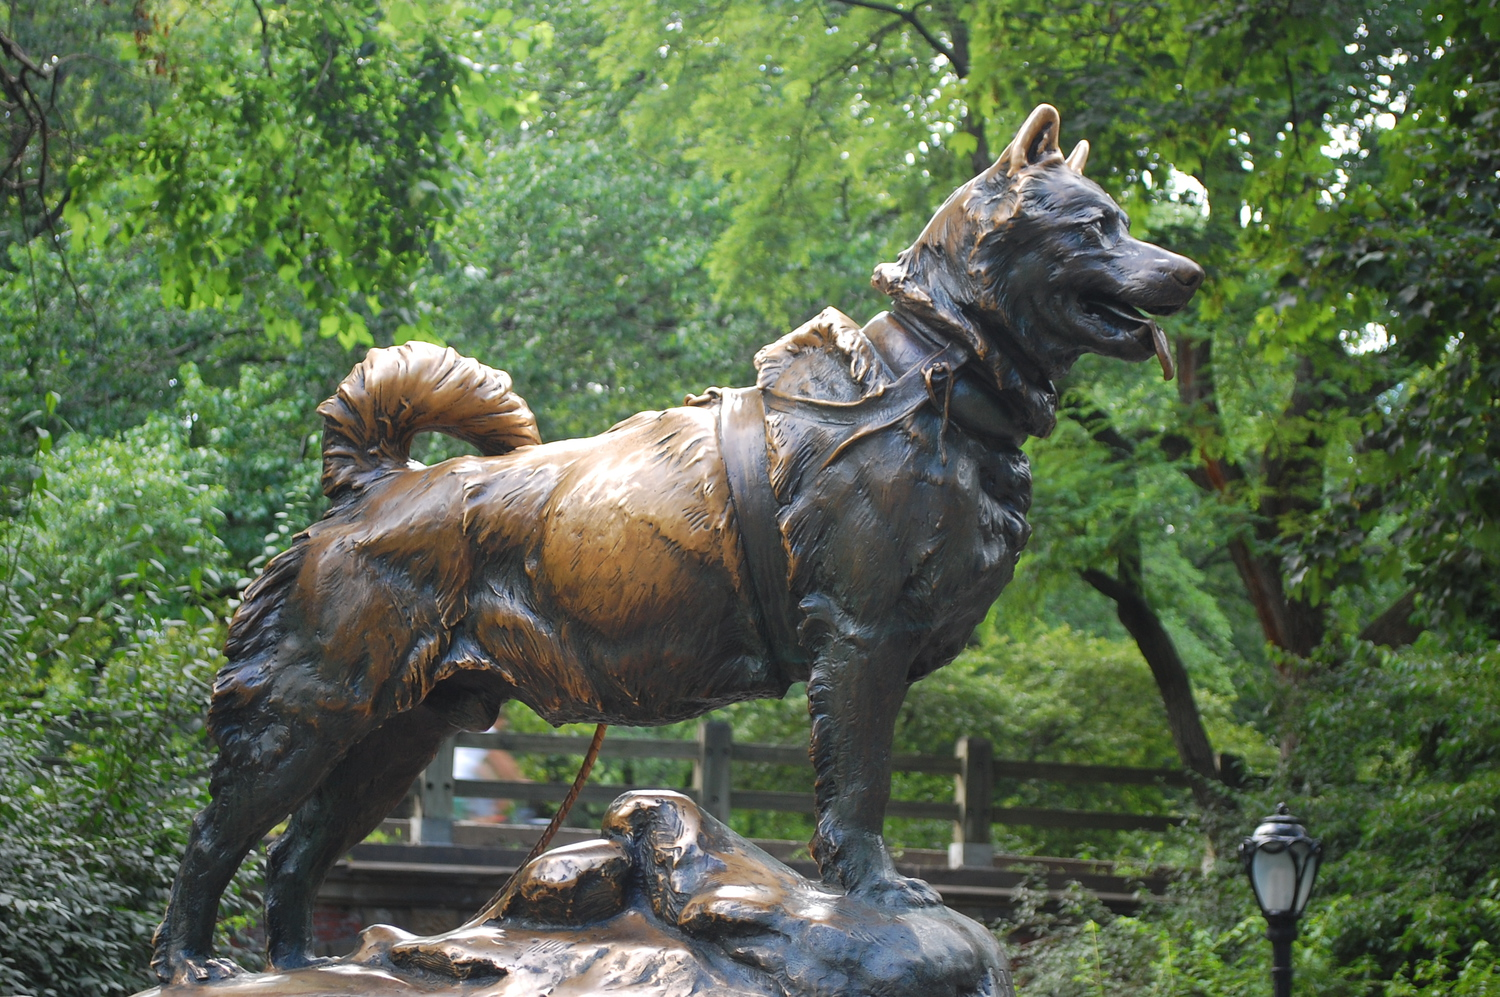 DSC_6382 | Balto statue in Central Park